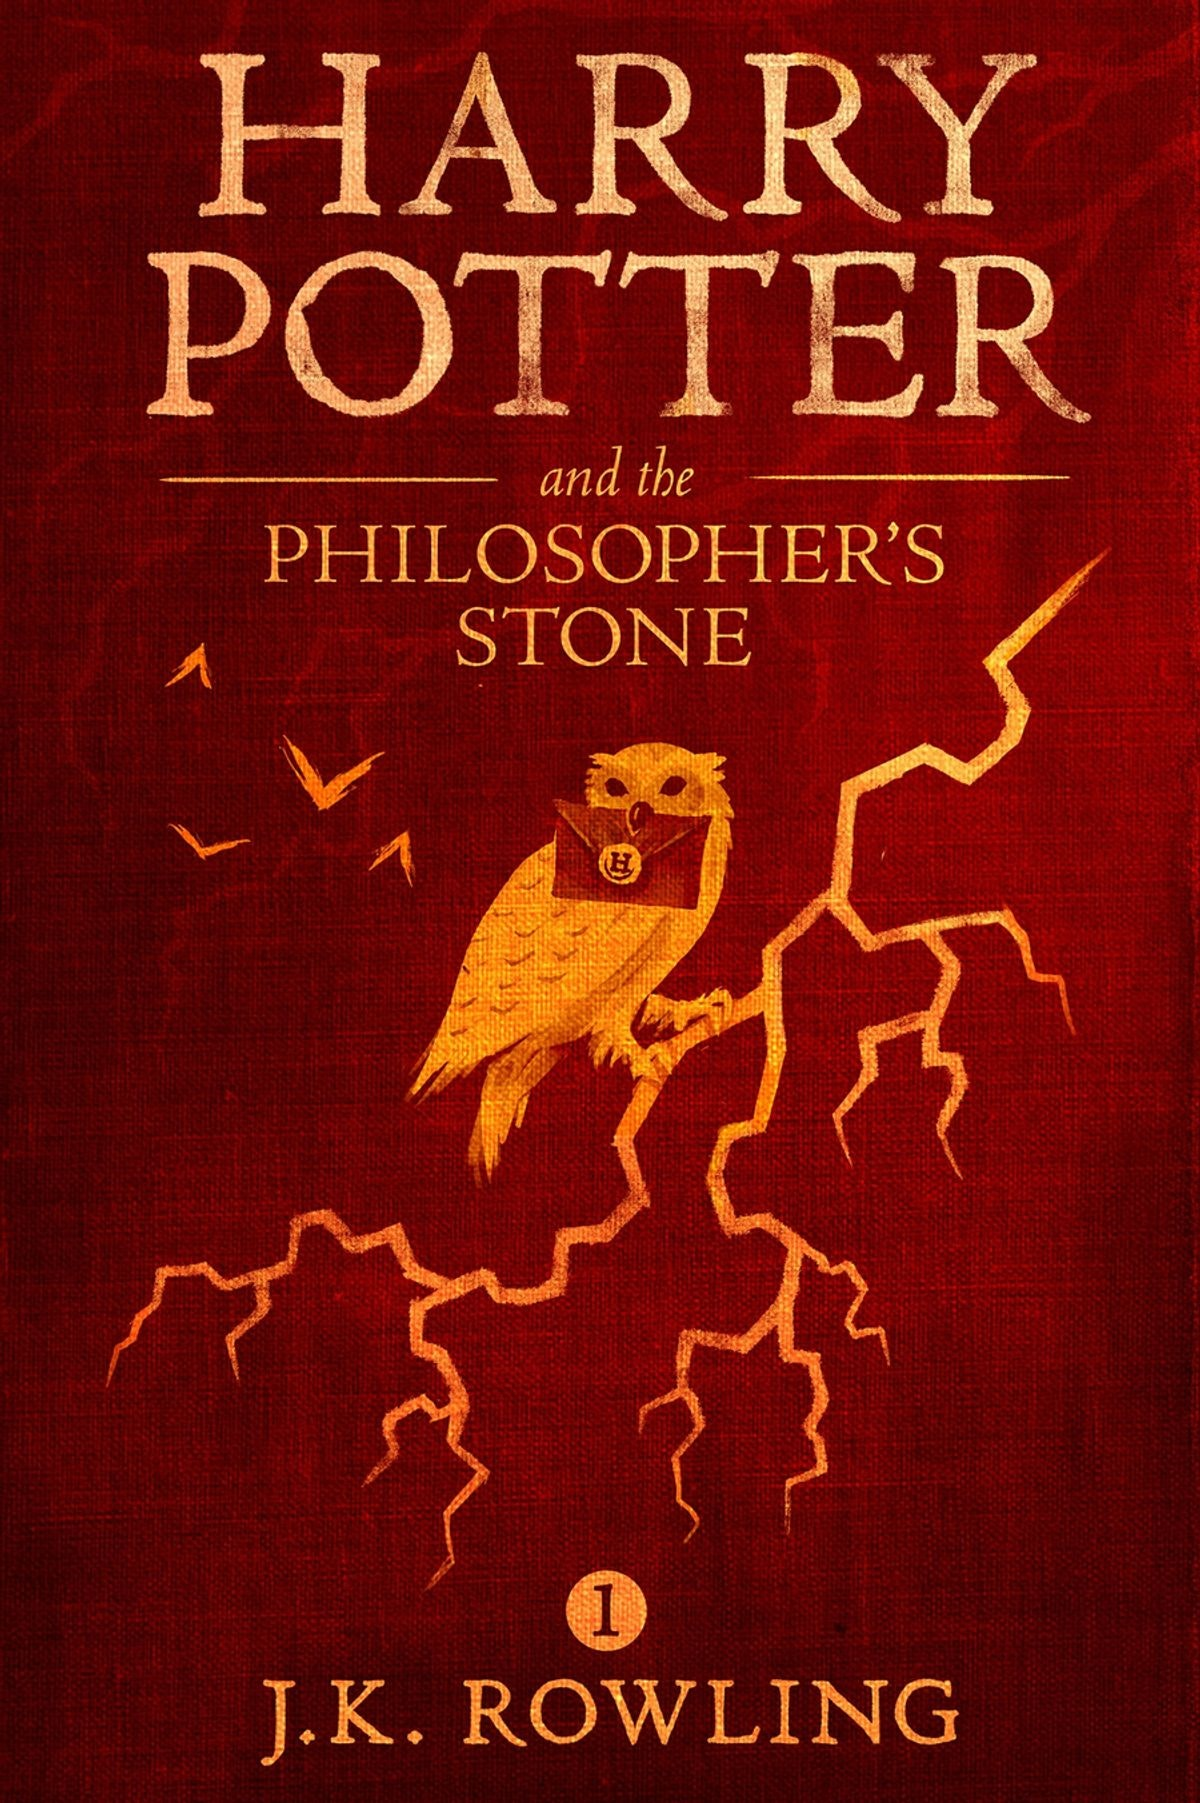 Harry Potter and the Philosopher's Stone – J.K. Rowling